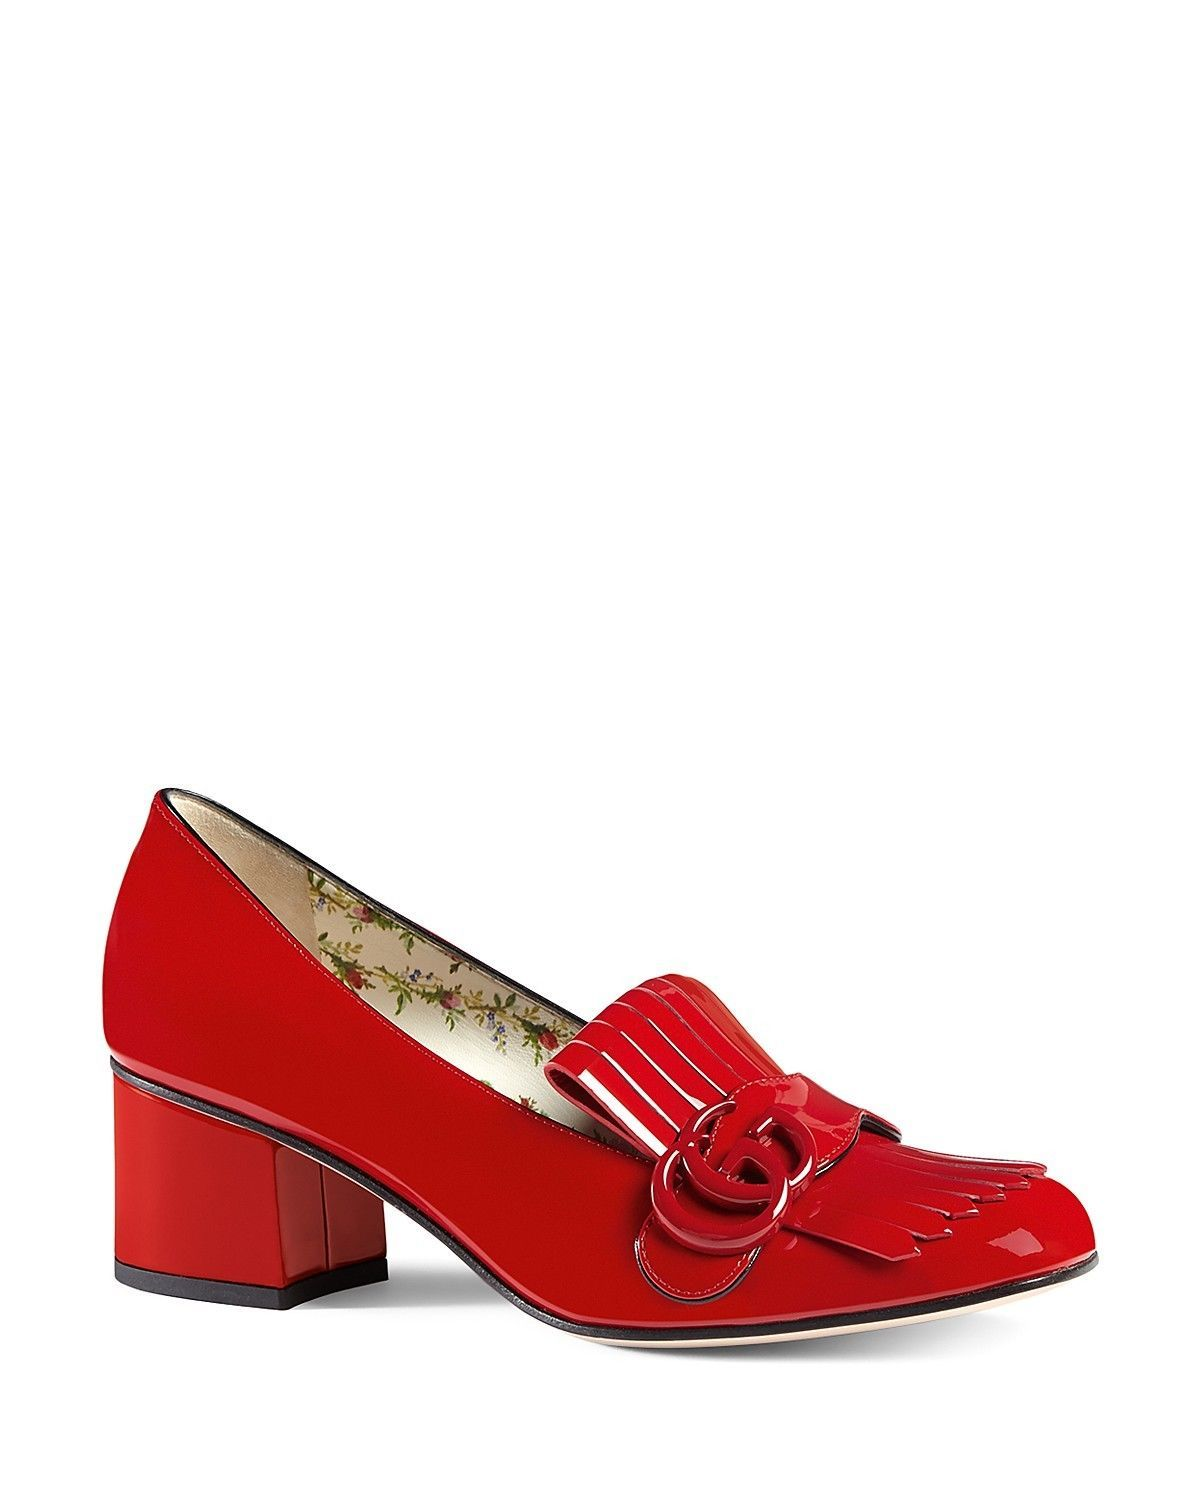 508b96f7b109 Gucci Women s Marmont Mid Heel Loafers Size 39 Red Patent Leather Retail   790